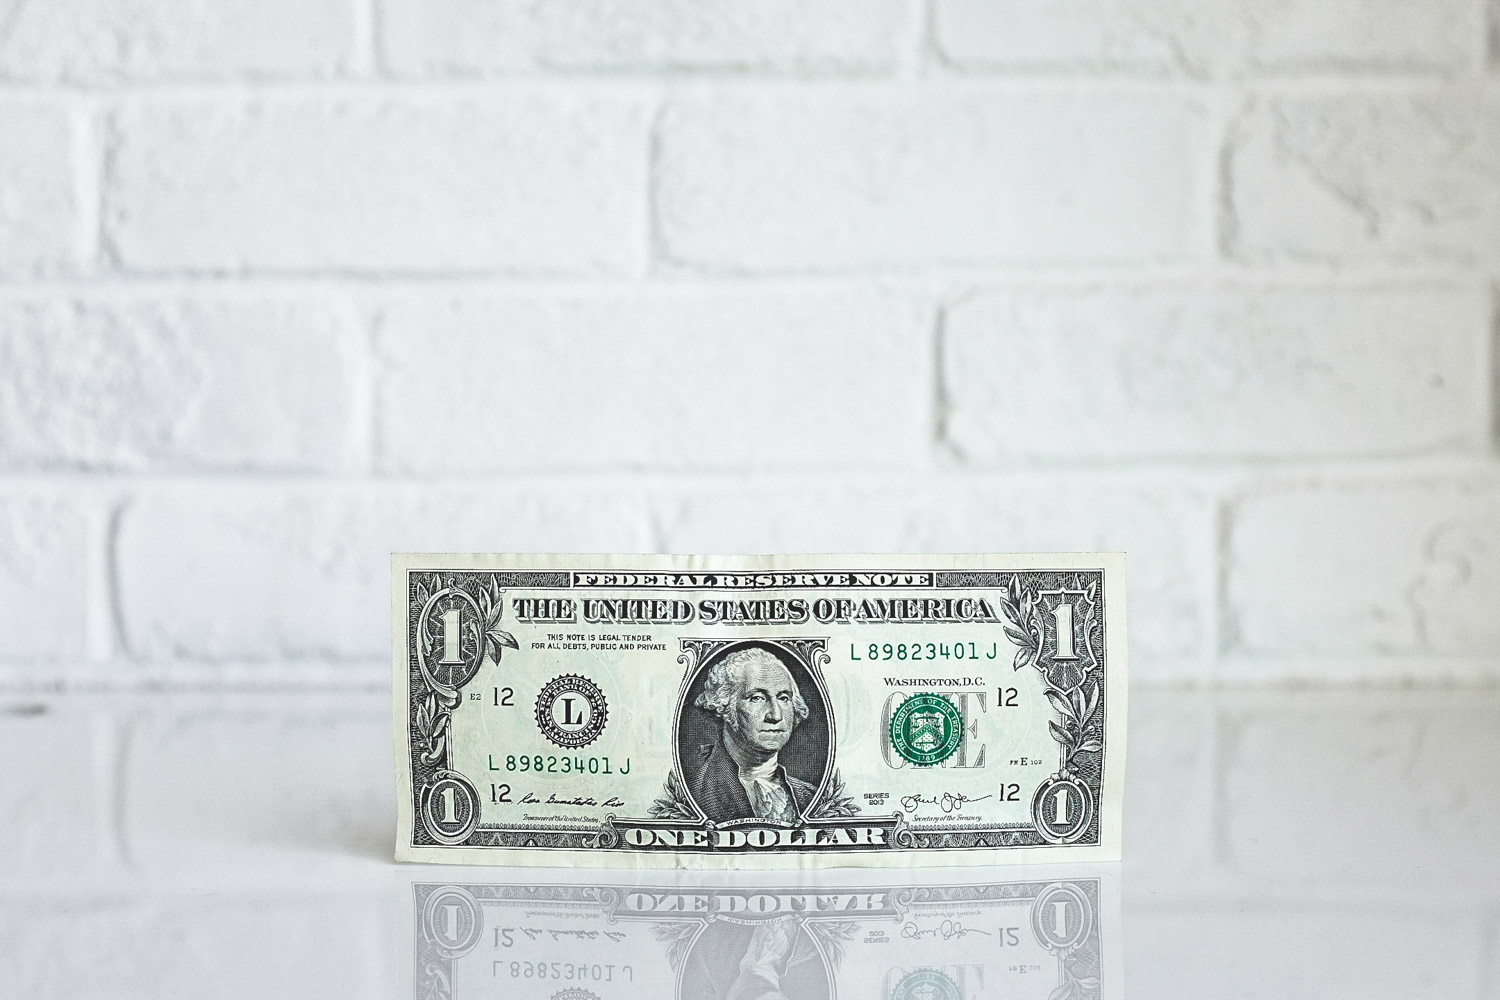 Should Americans change dollars into Euros before exchanging into Cuban currency?